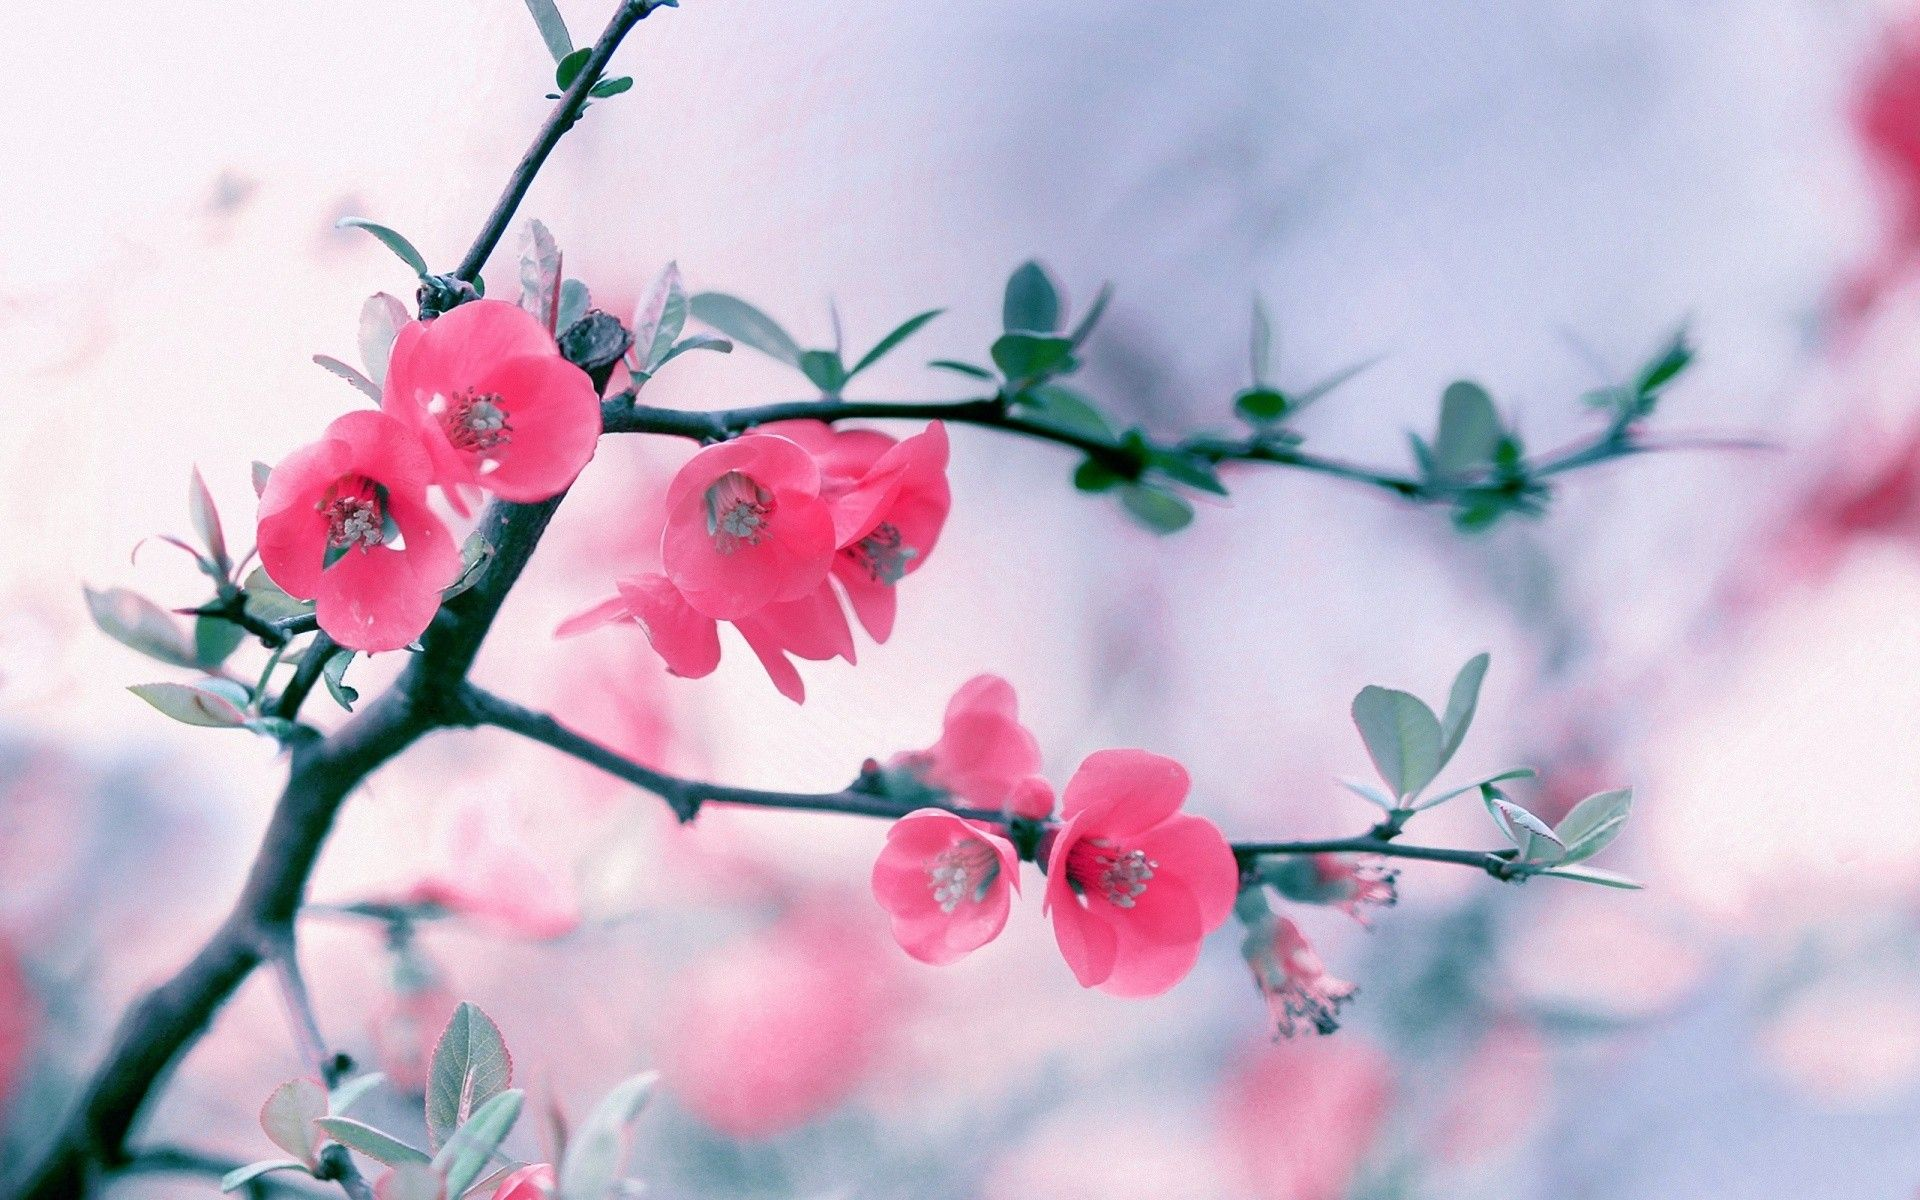 Flower wallpaper ·① Download free cool wallpapers for desktop ...